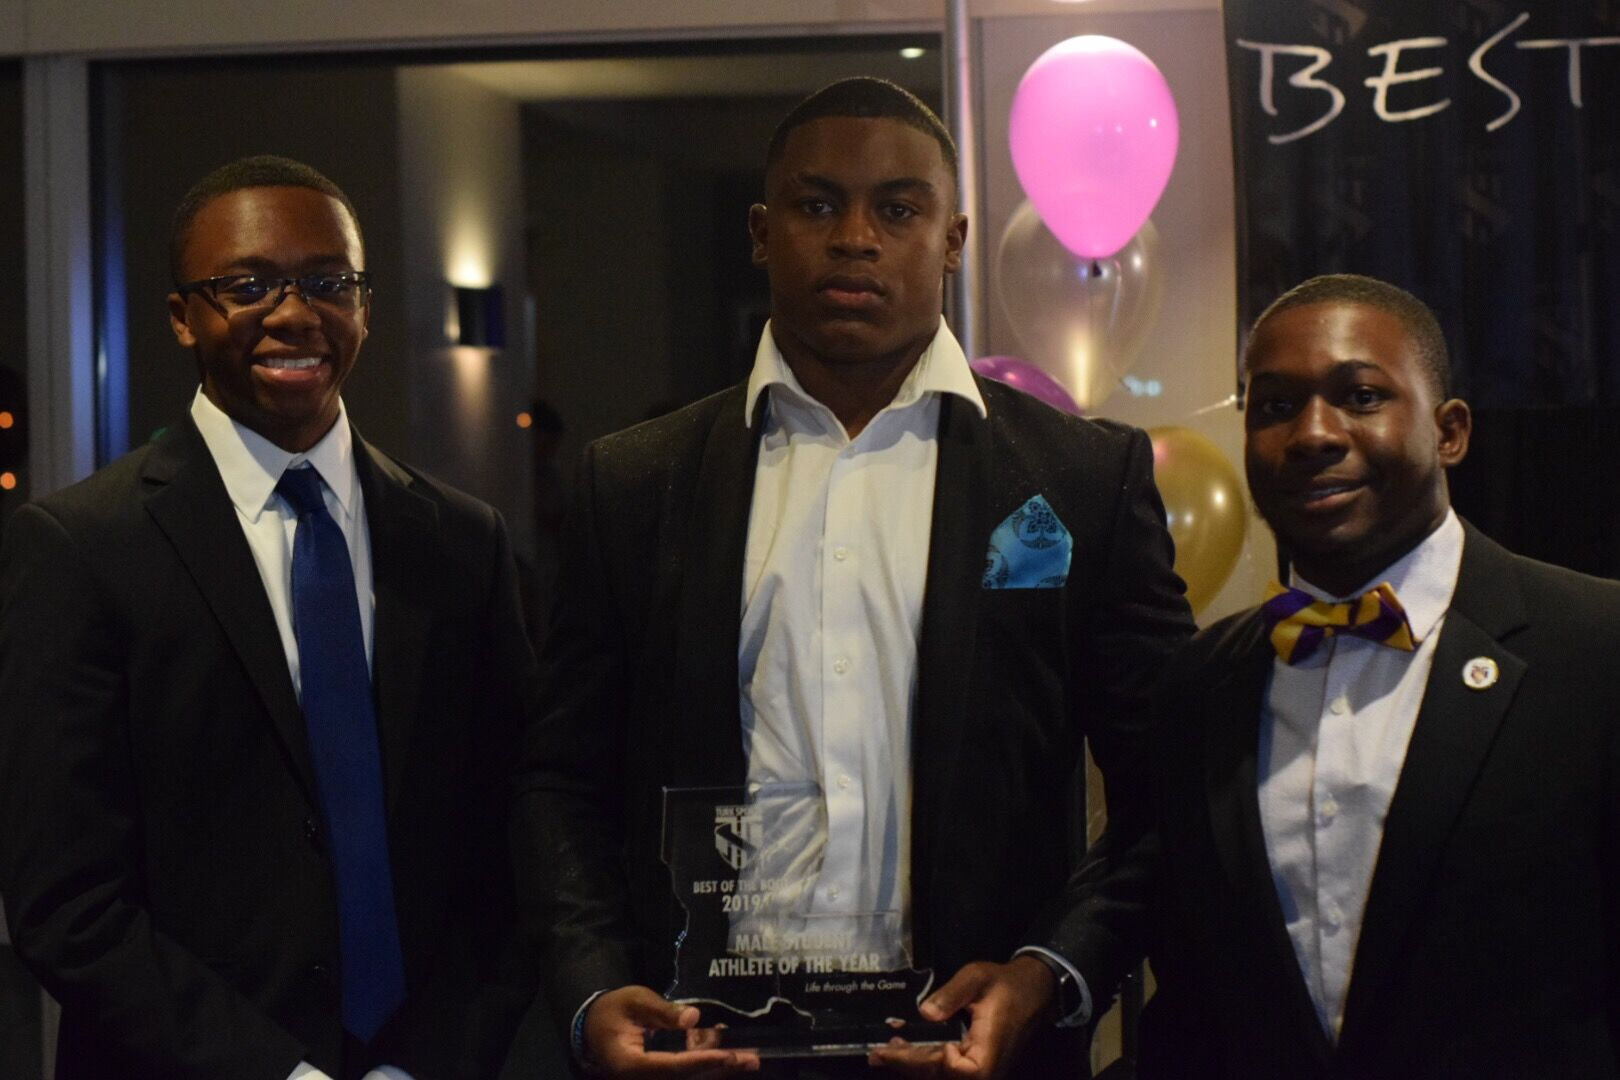 Jacob Parker- Male Student-Athlete of The Year receives award from Myles Mackie & Lance Jones